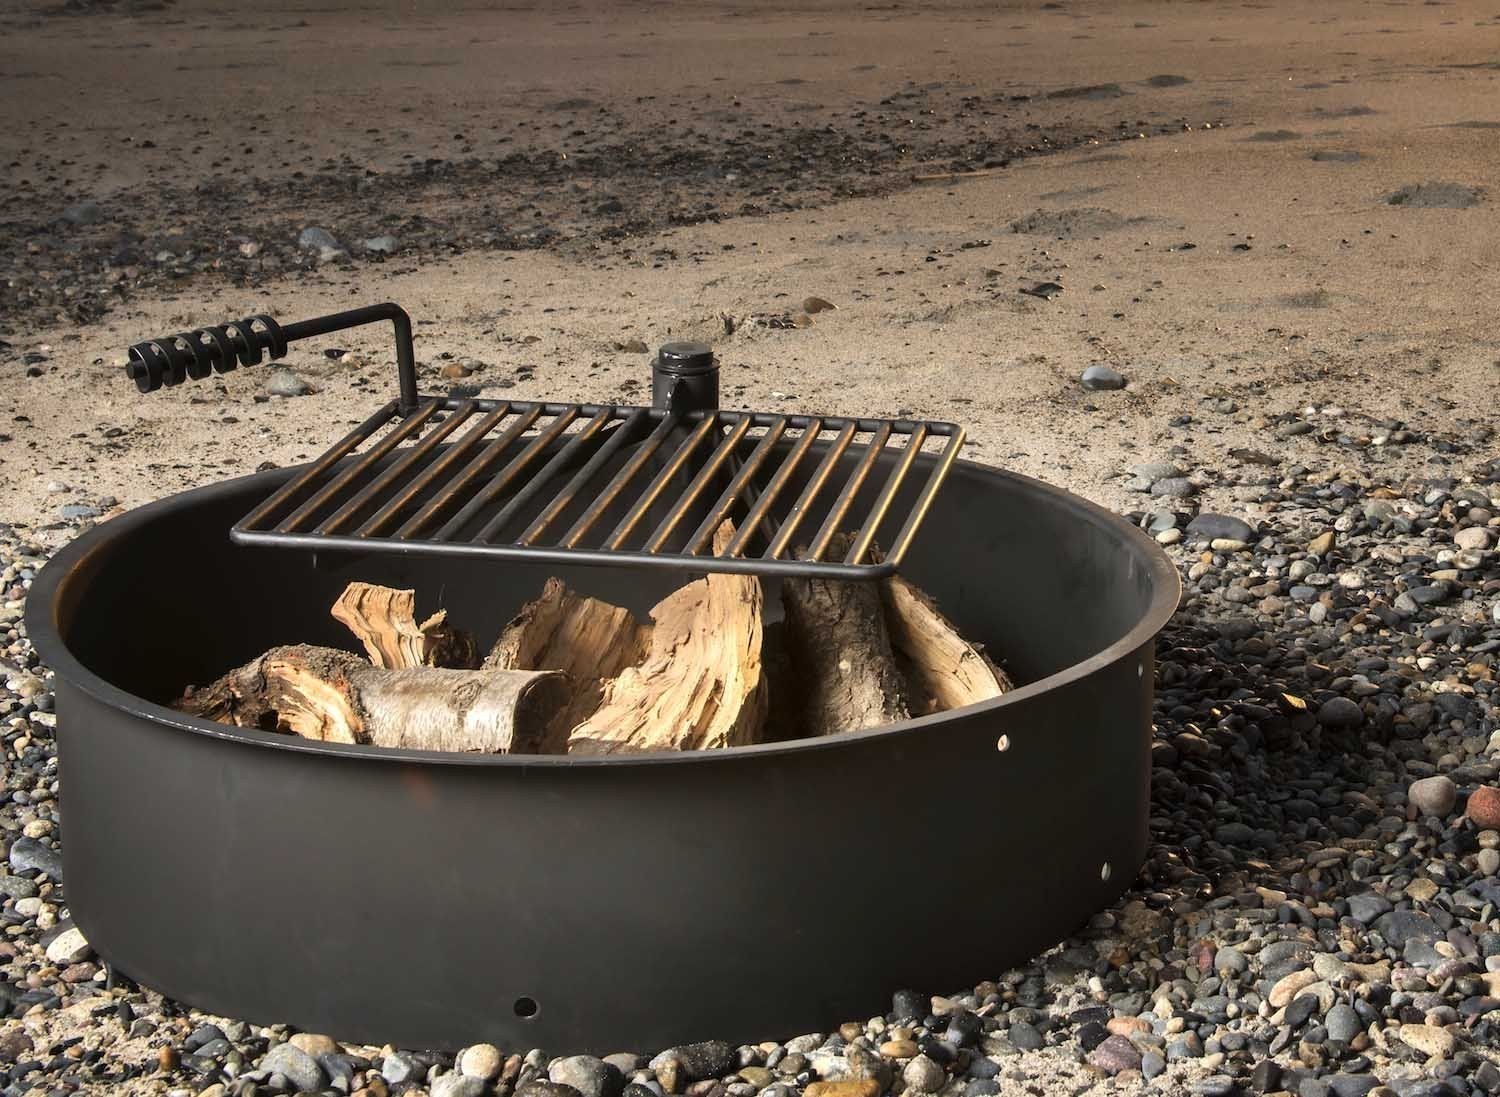 Details About Titan Adjustable Swivel Grill Campfire Cooking Grate 40 Fire Pit Ring Bbq With Images Fire Pit Cooking Fire Pit Grill Campfire Cooking Grate